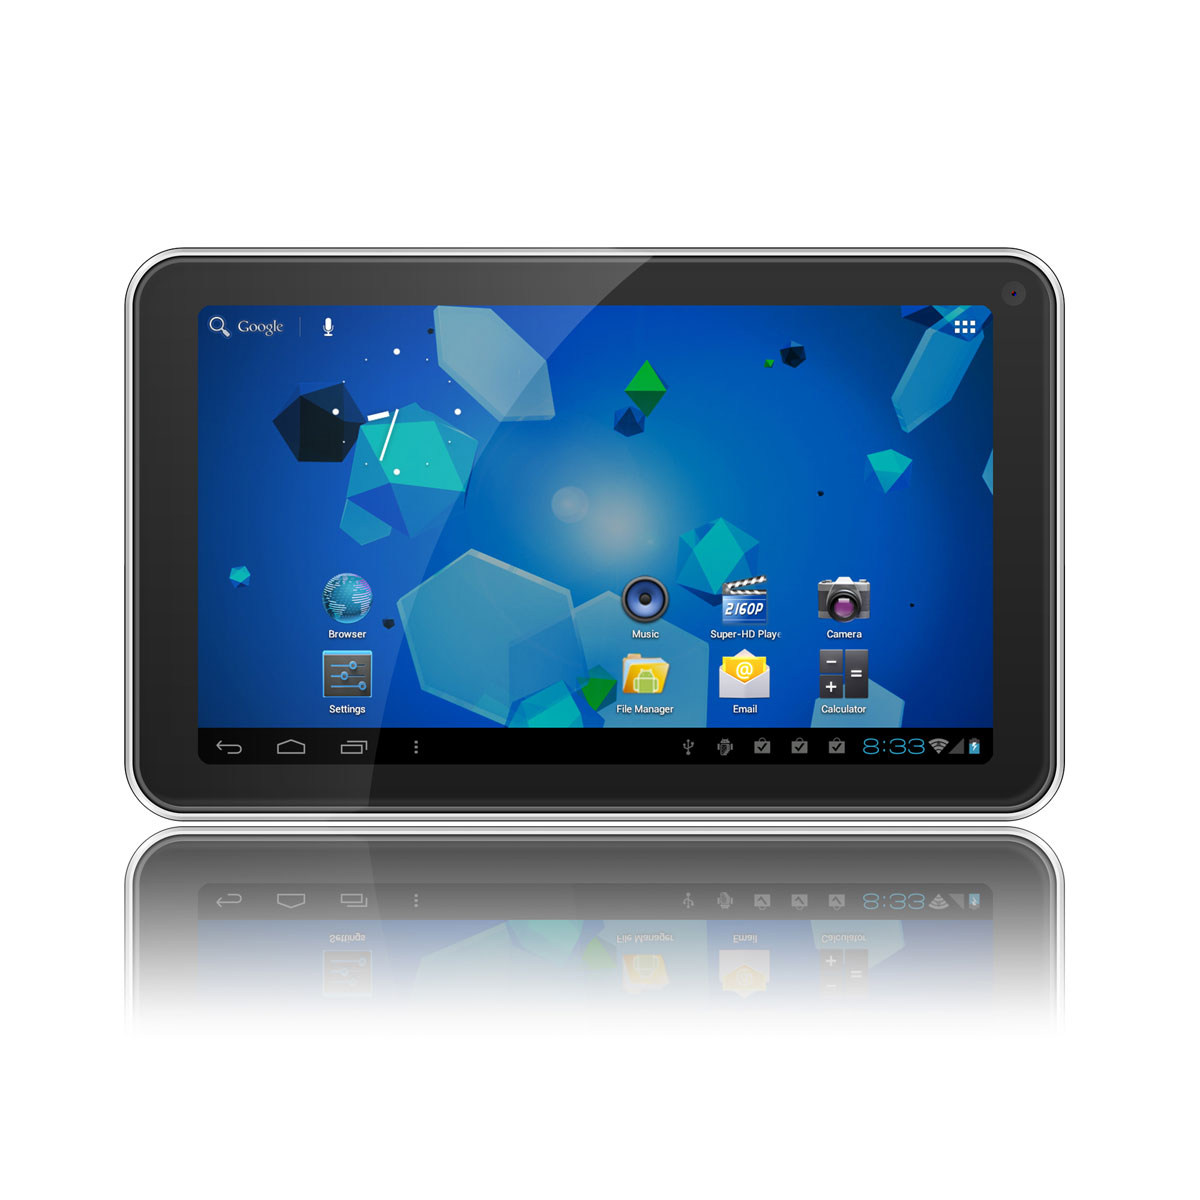 "Tablette tactile MPMAN MP700 8 Go Tablette Internet - ARM Cortex-A8 1 GHz 512 Mo 8 Go 7"" LCD tactile Wi-Fi N Webcam Android 4.0"